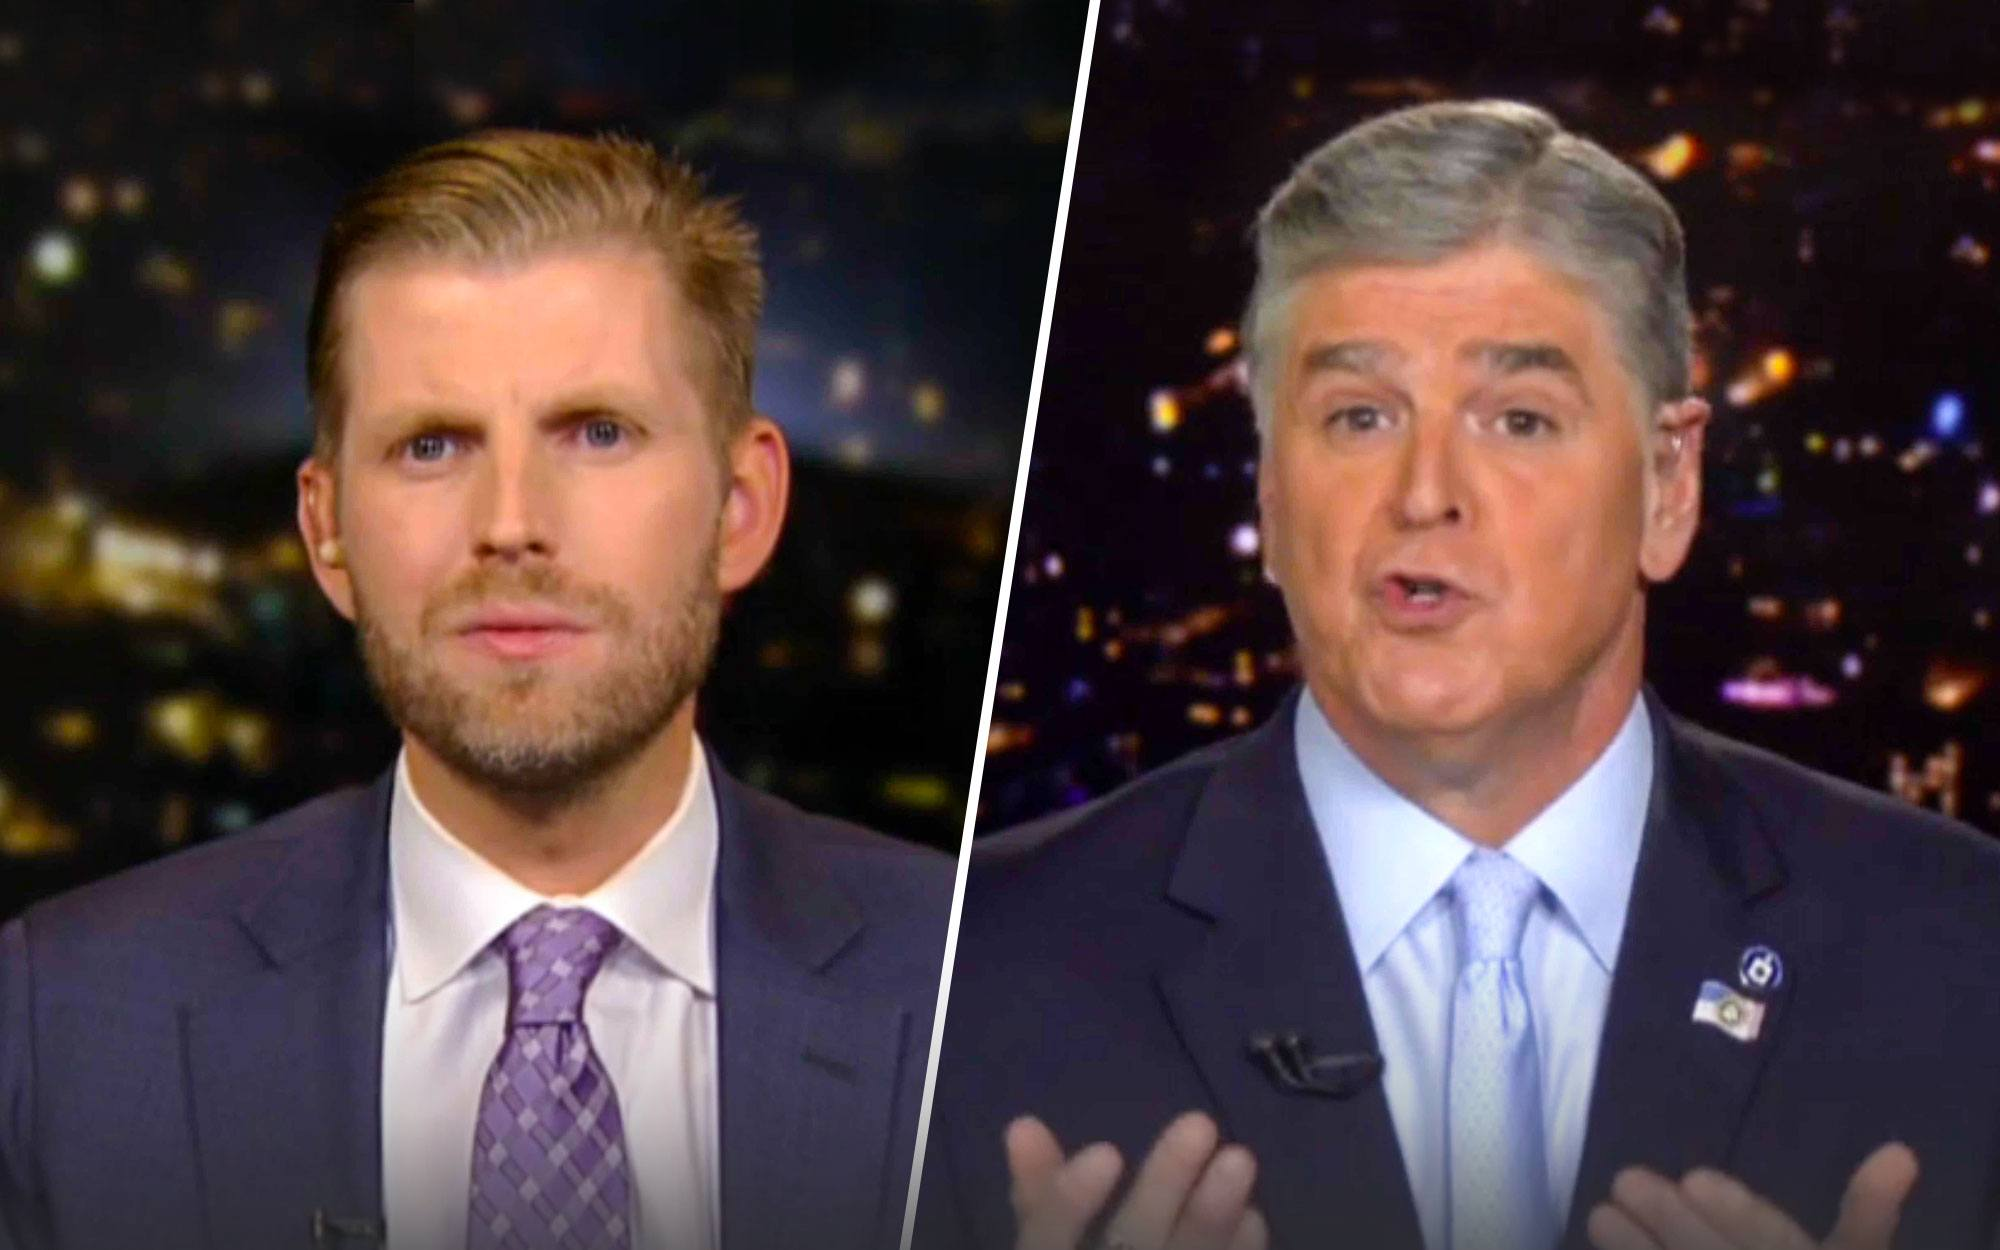 Eric Trump Says Dems 'Detest' the President 'Because He's Getting Results They Could Never Get'